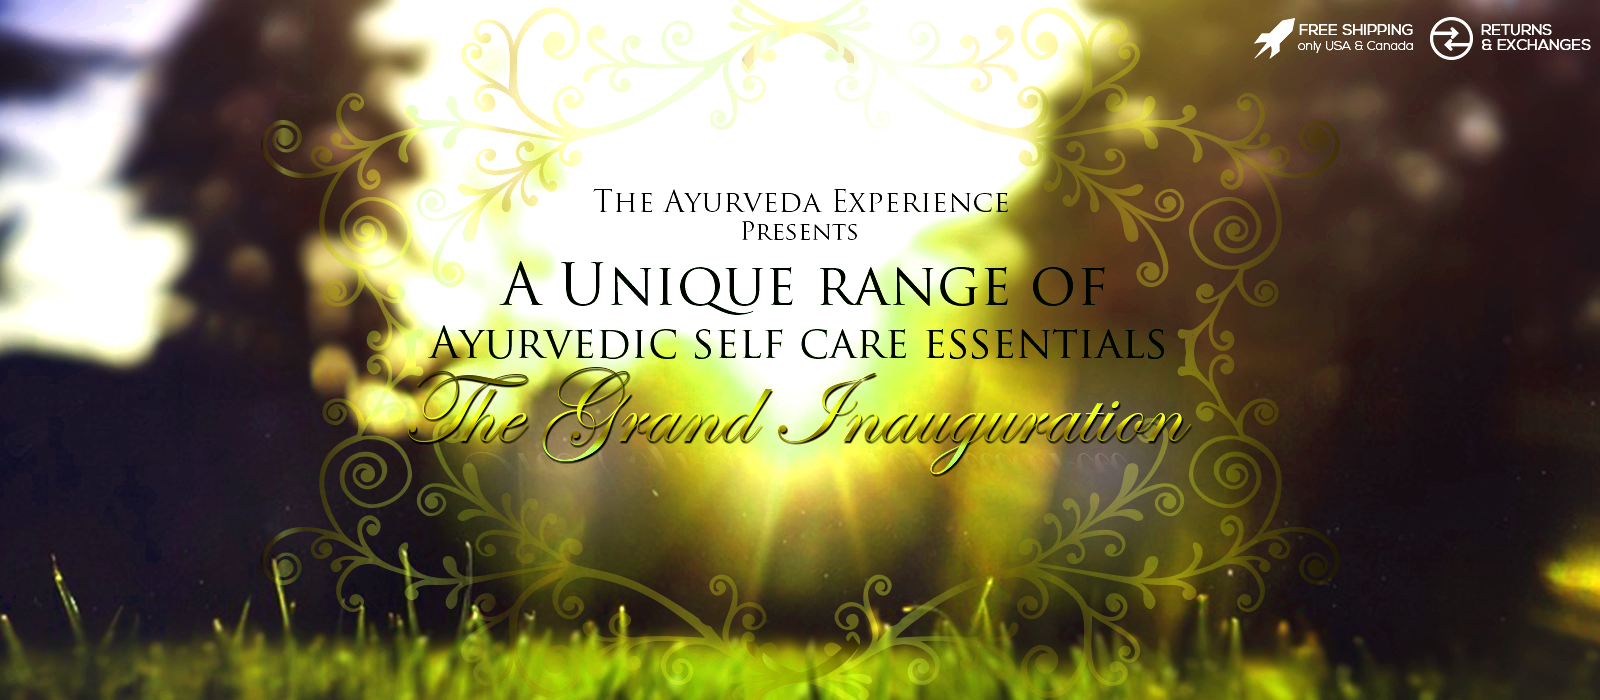 Experience the power of Ayurvedic self-care essentials at reasonable prices